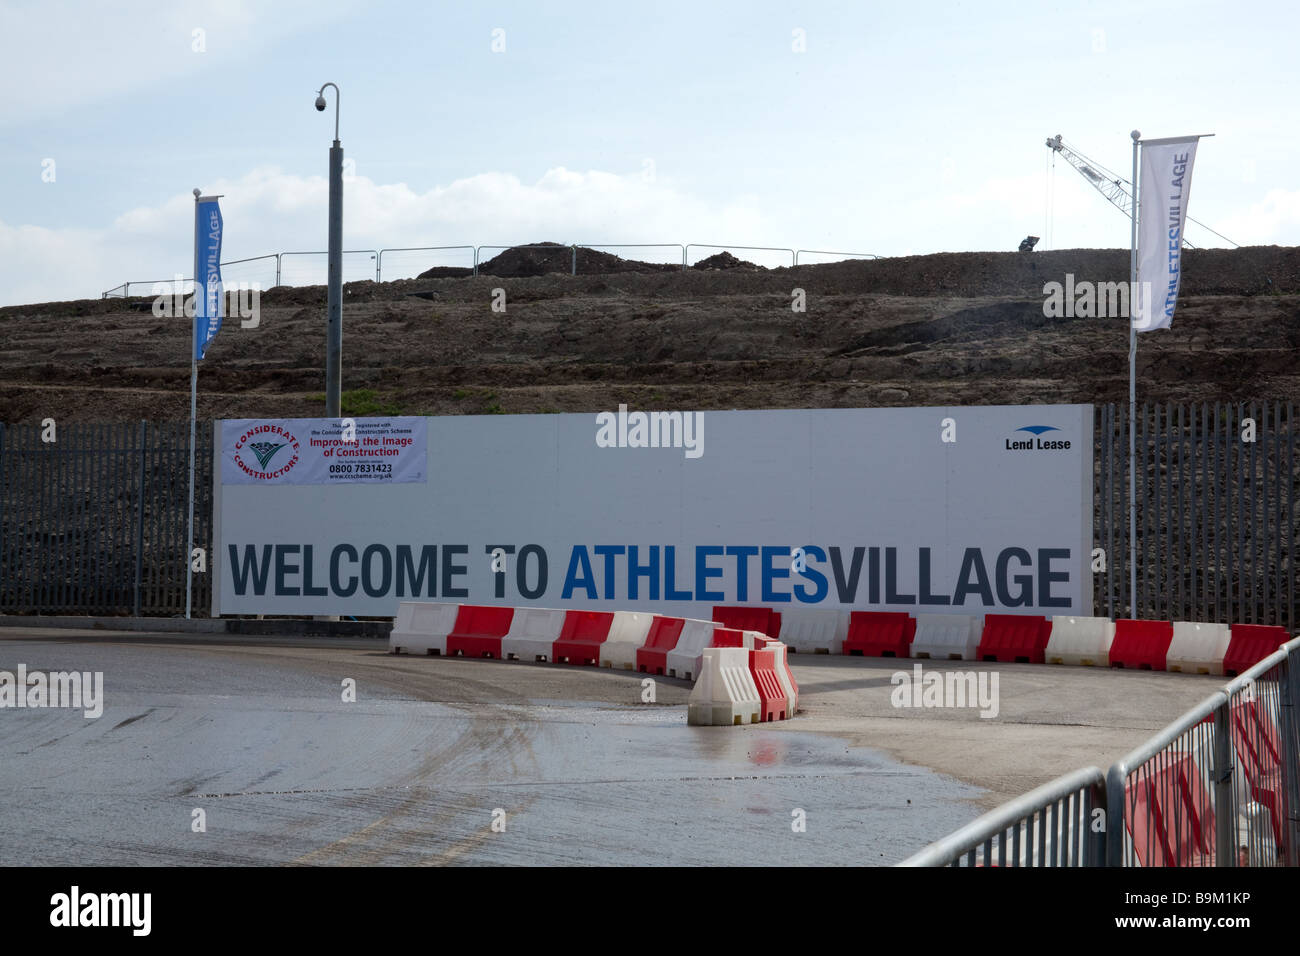 The Athletes village for the London 2112 Olympics under construction March 2009 - Stock Image